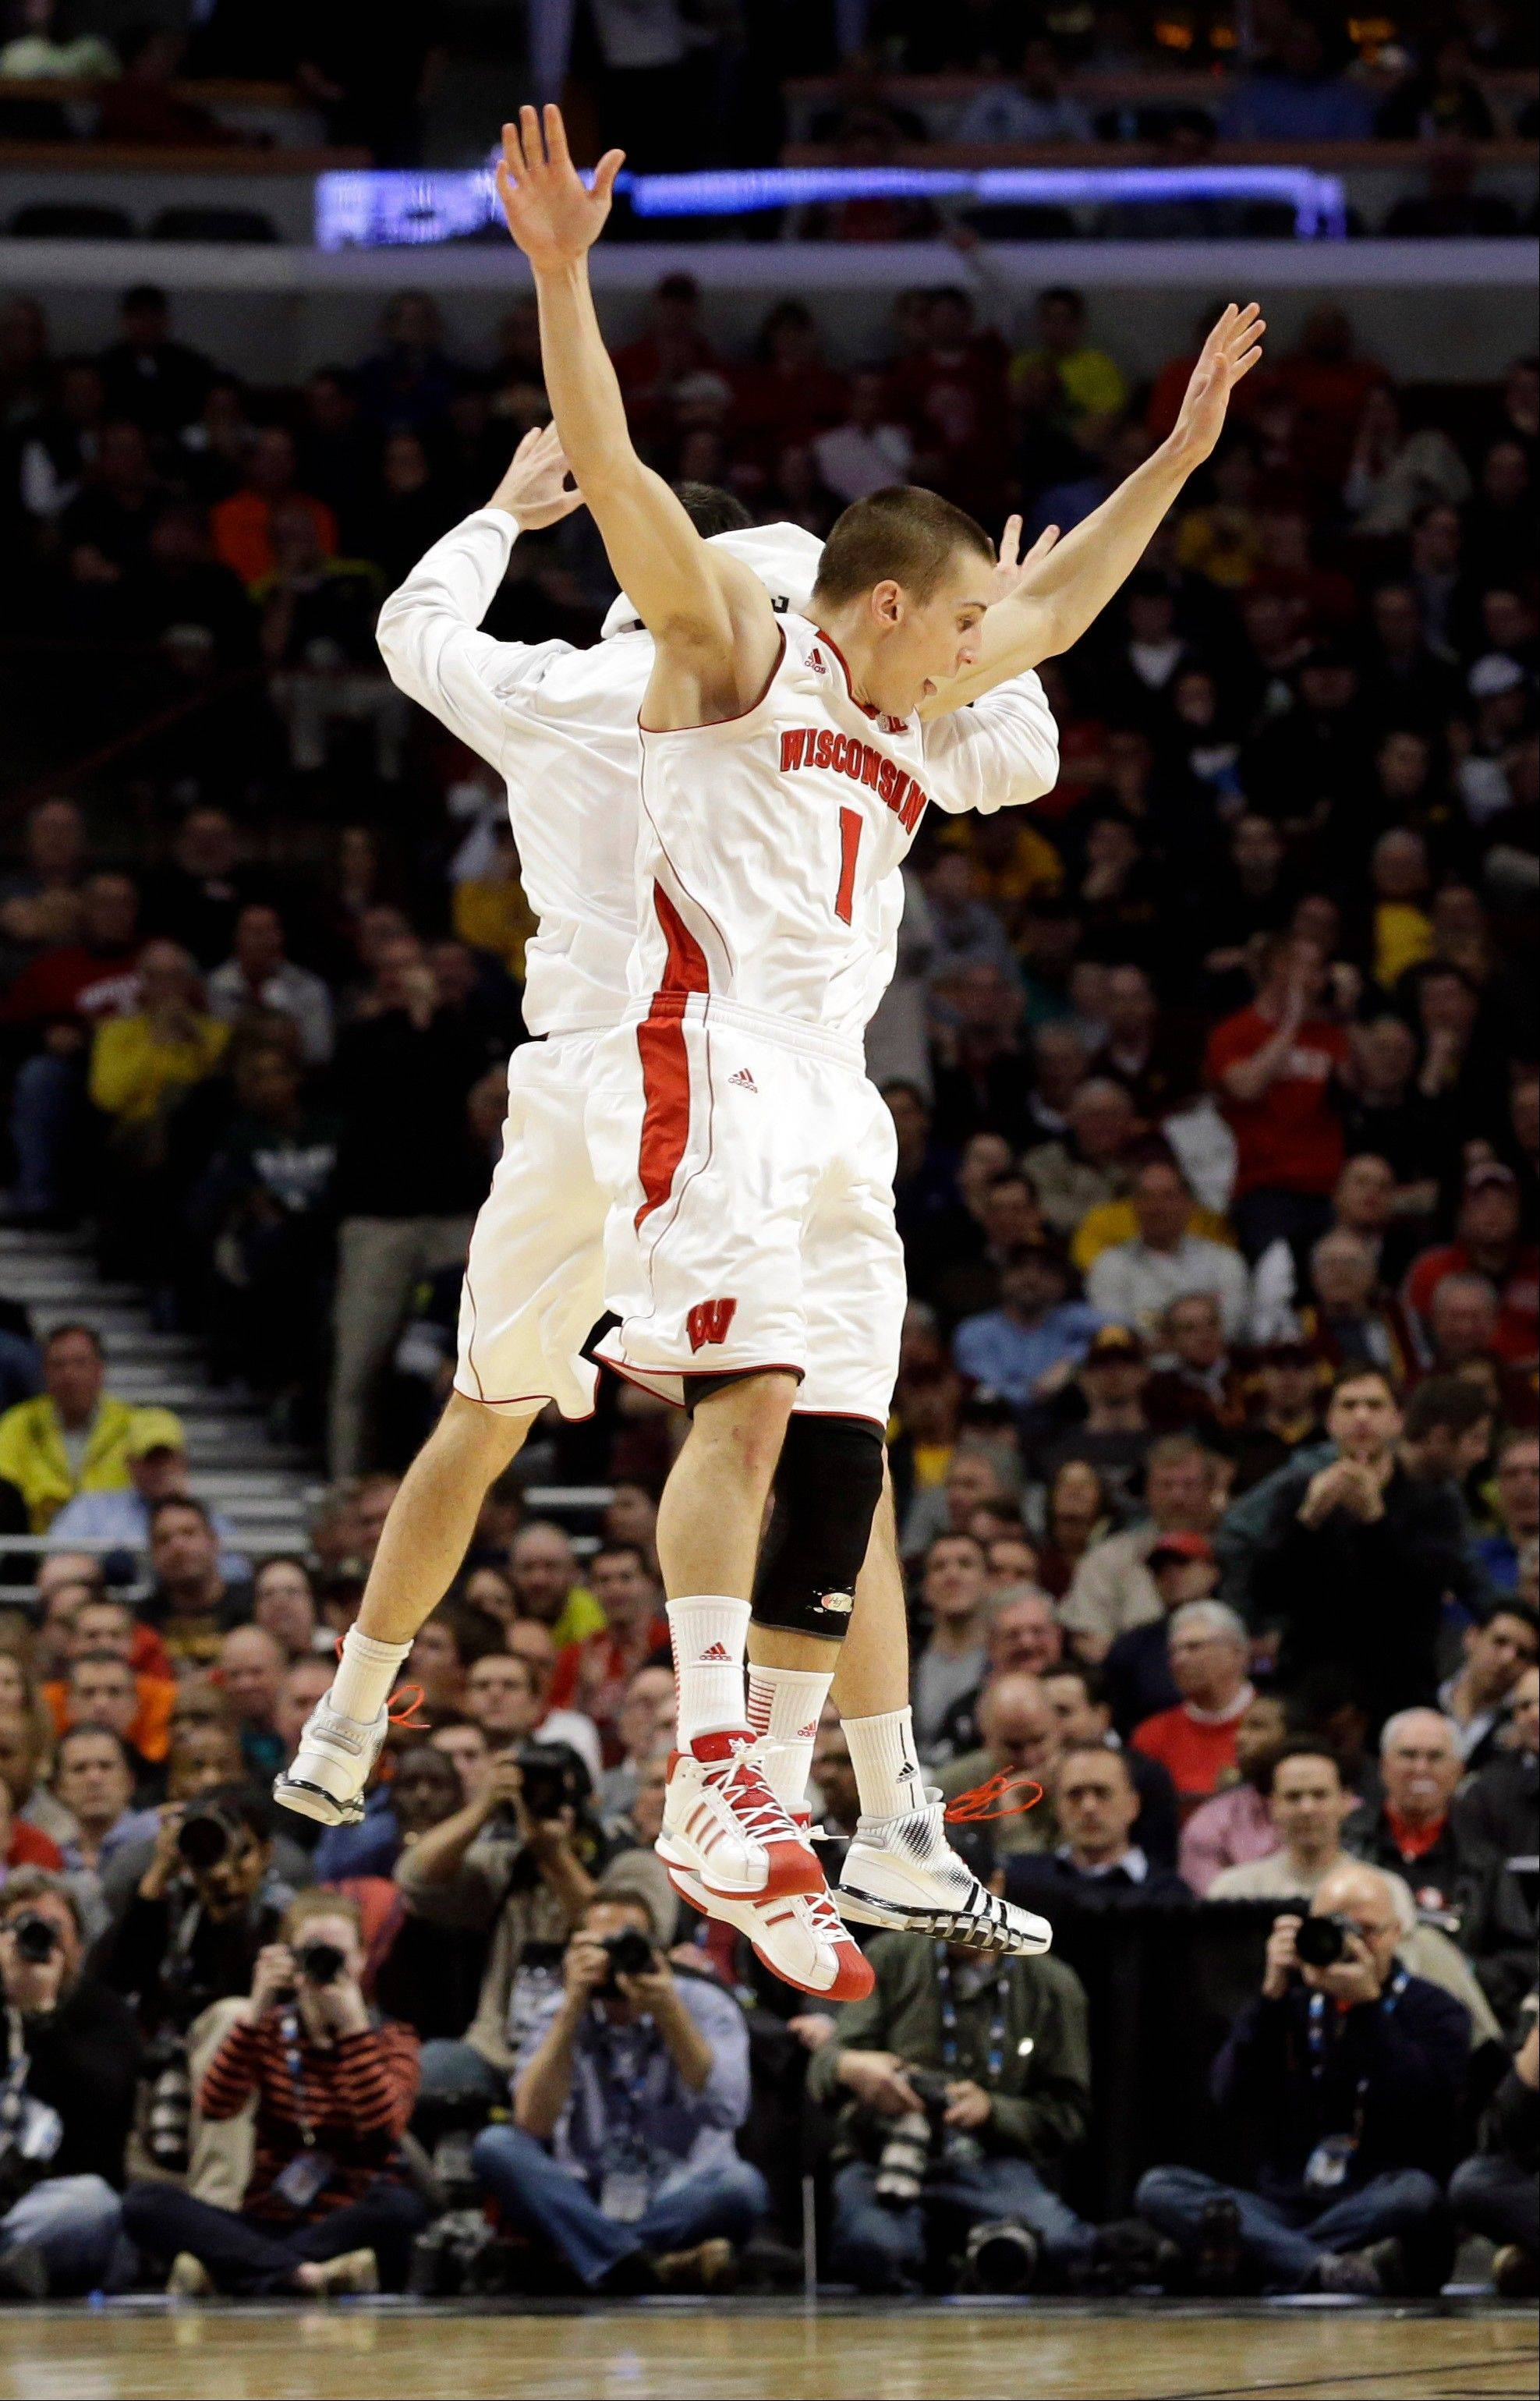 Wisconsin player and Mundelein native Ben Brust celebrates with a teammate during the second half of an NCAA college basketball game at the Big Ten tournament against MichiganFriday, March 15, 2013, in Chicago. Wisconsin won 68-59.